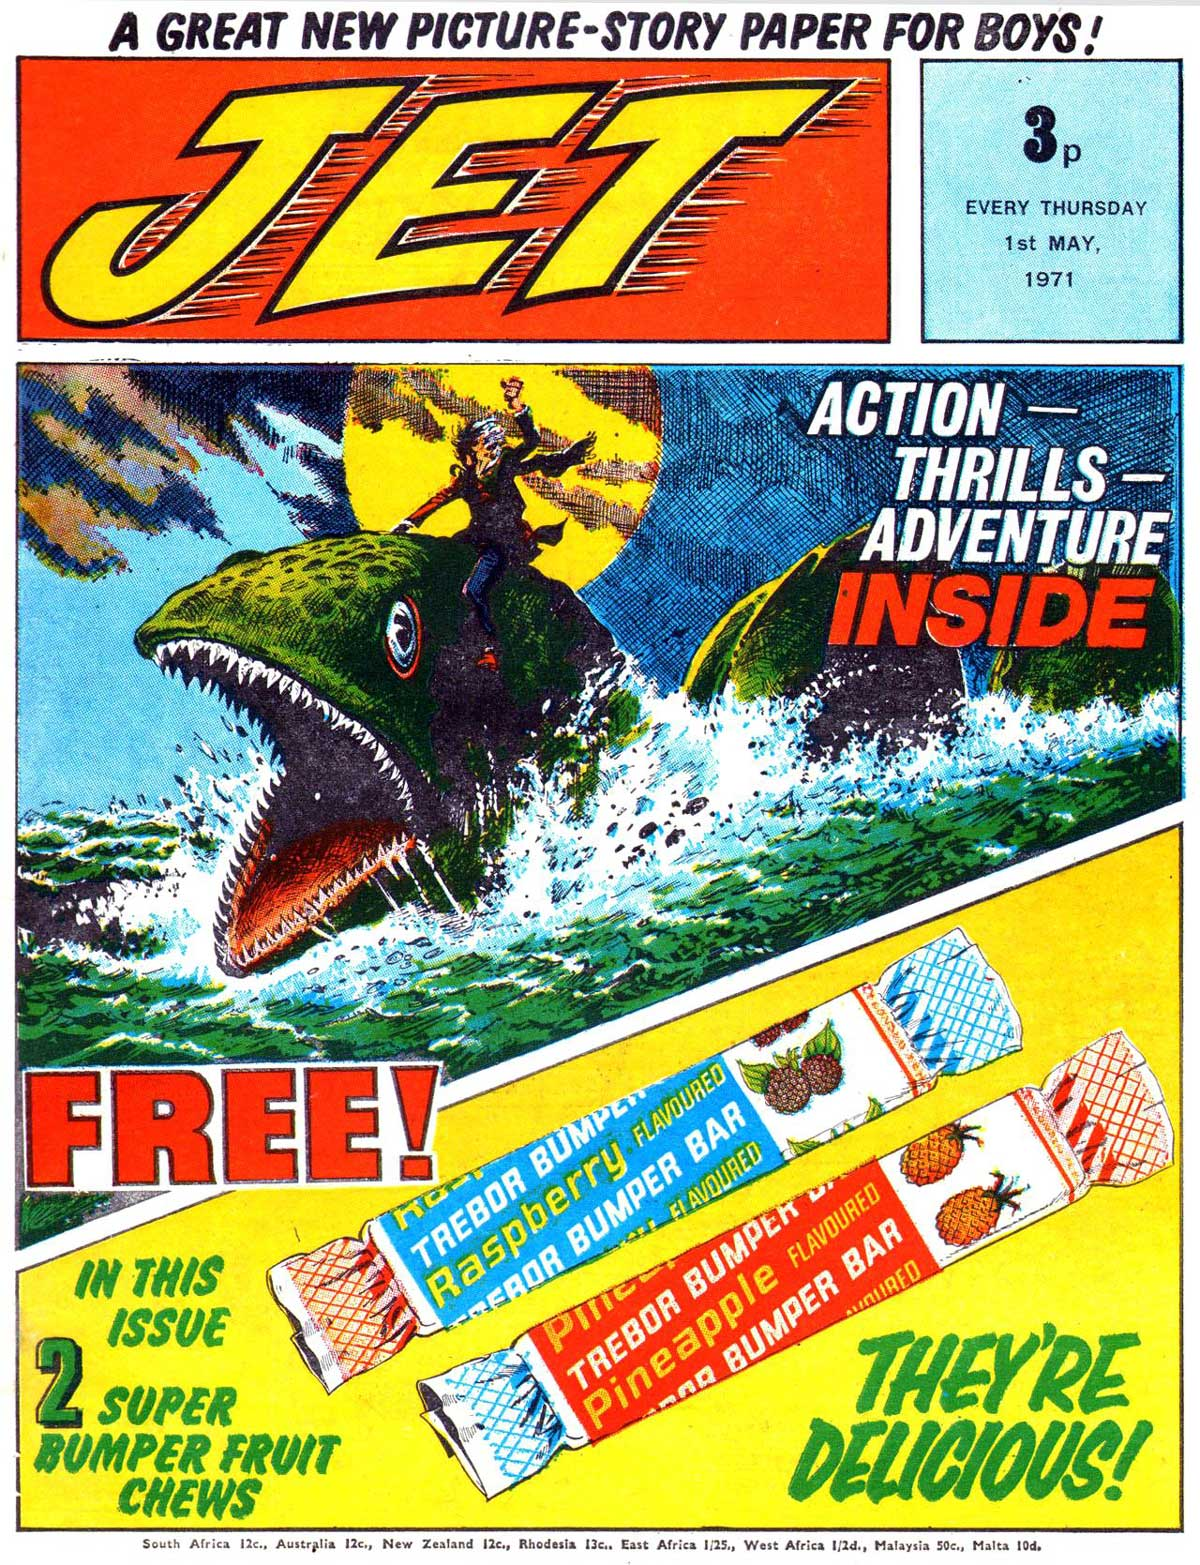 Jet Issue 1 - cover date 1st May 1971 - Cover